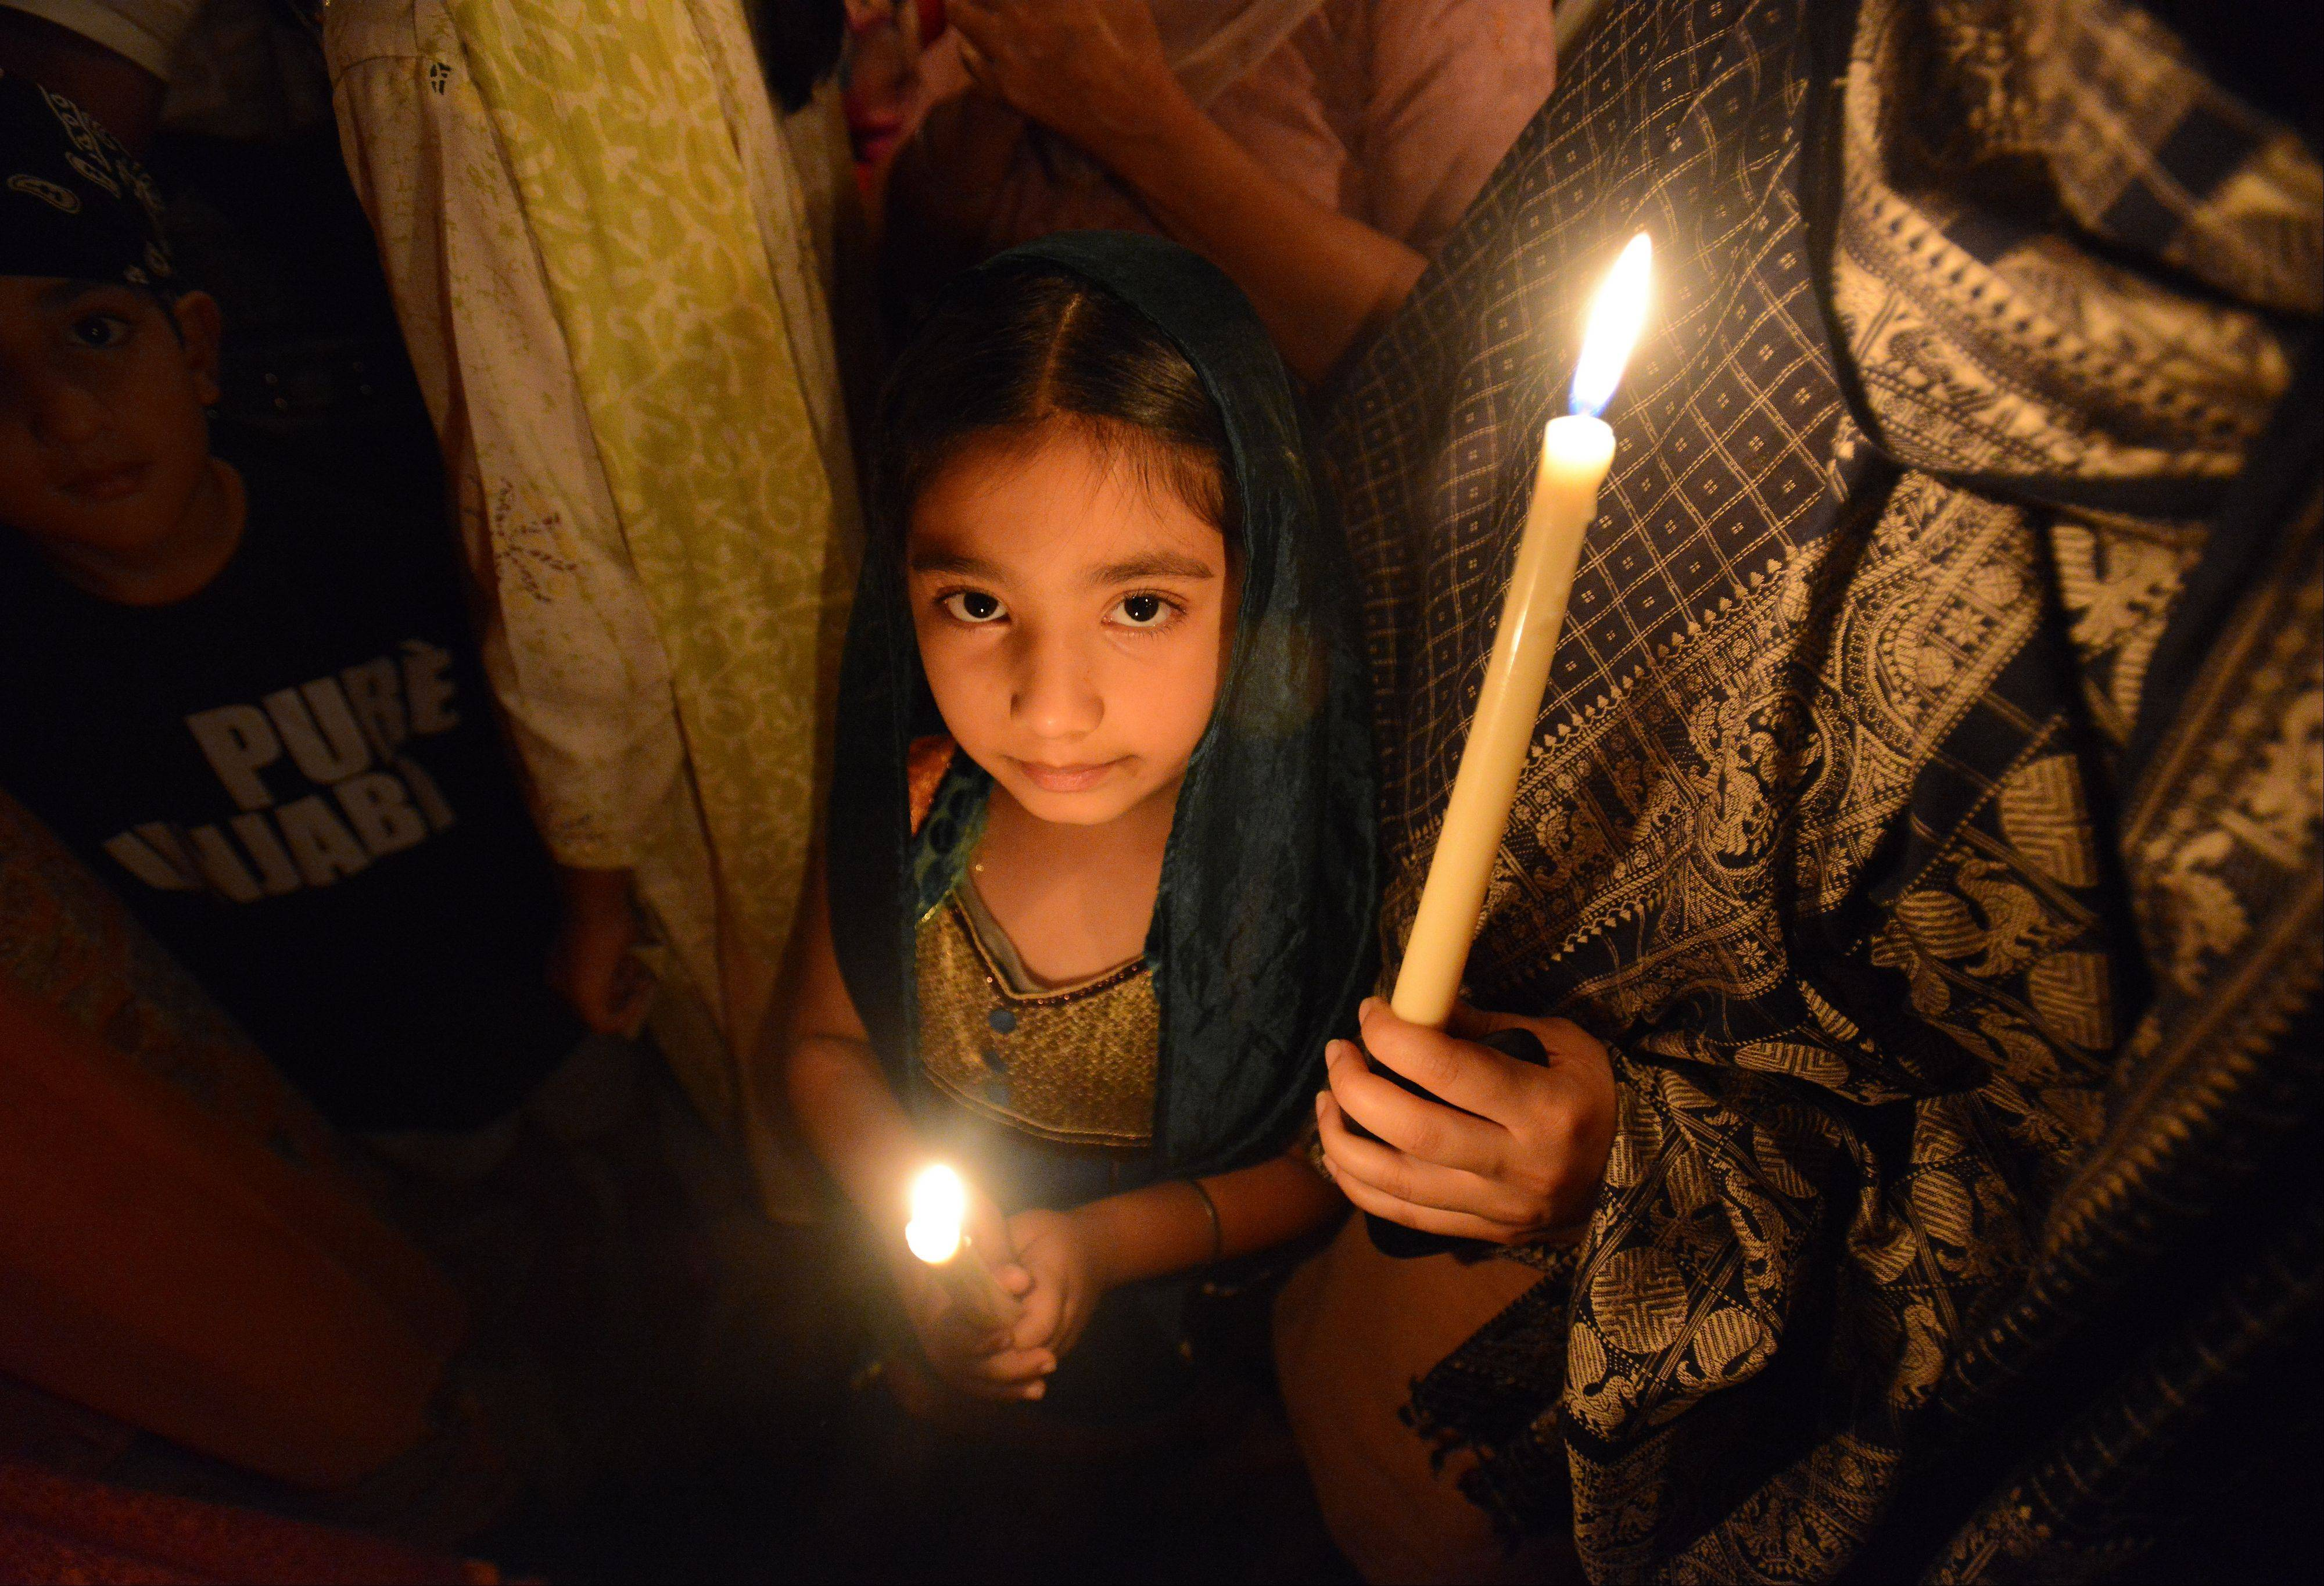 Young and old came to the candlelight vigil held in Palatine at the Sikh Religious Society temple to pray and remember those who were killed in a Wisconsin Sikh temple shooting.